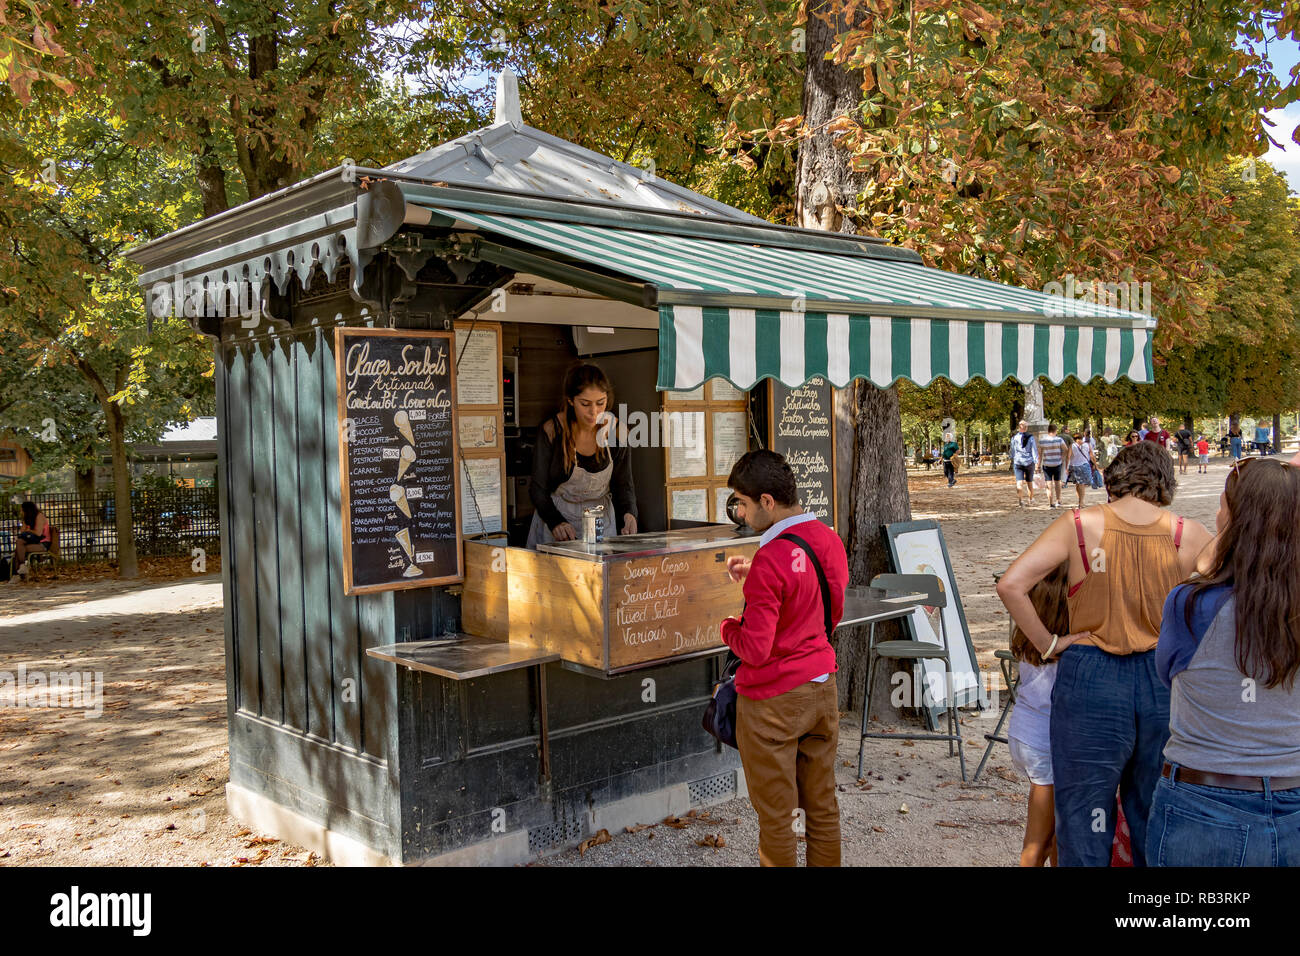 A line of People queueing at a refreshment kiosk on a summers day to buy refreshments from the kiosk vendor  in Jardin du Luxembourg ,Paris,France - Stock Image